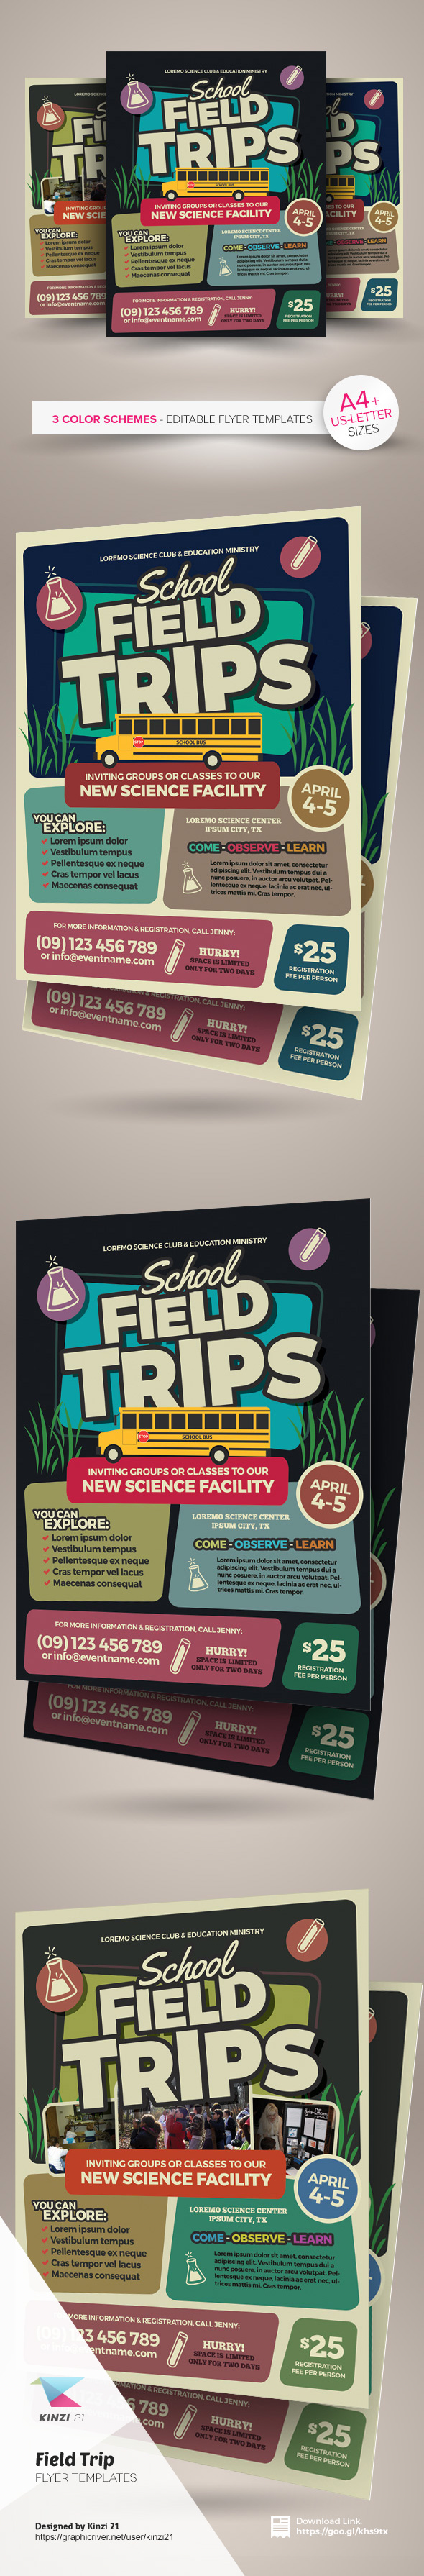 field trip flyer templates on behance field trip flyer templates are fully editable design templates created for on graphic river more info of the templates and how to get the sourcefile